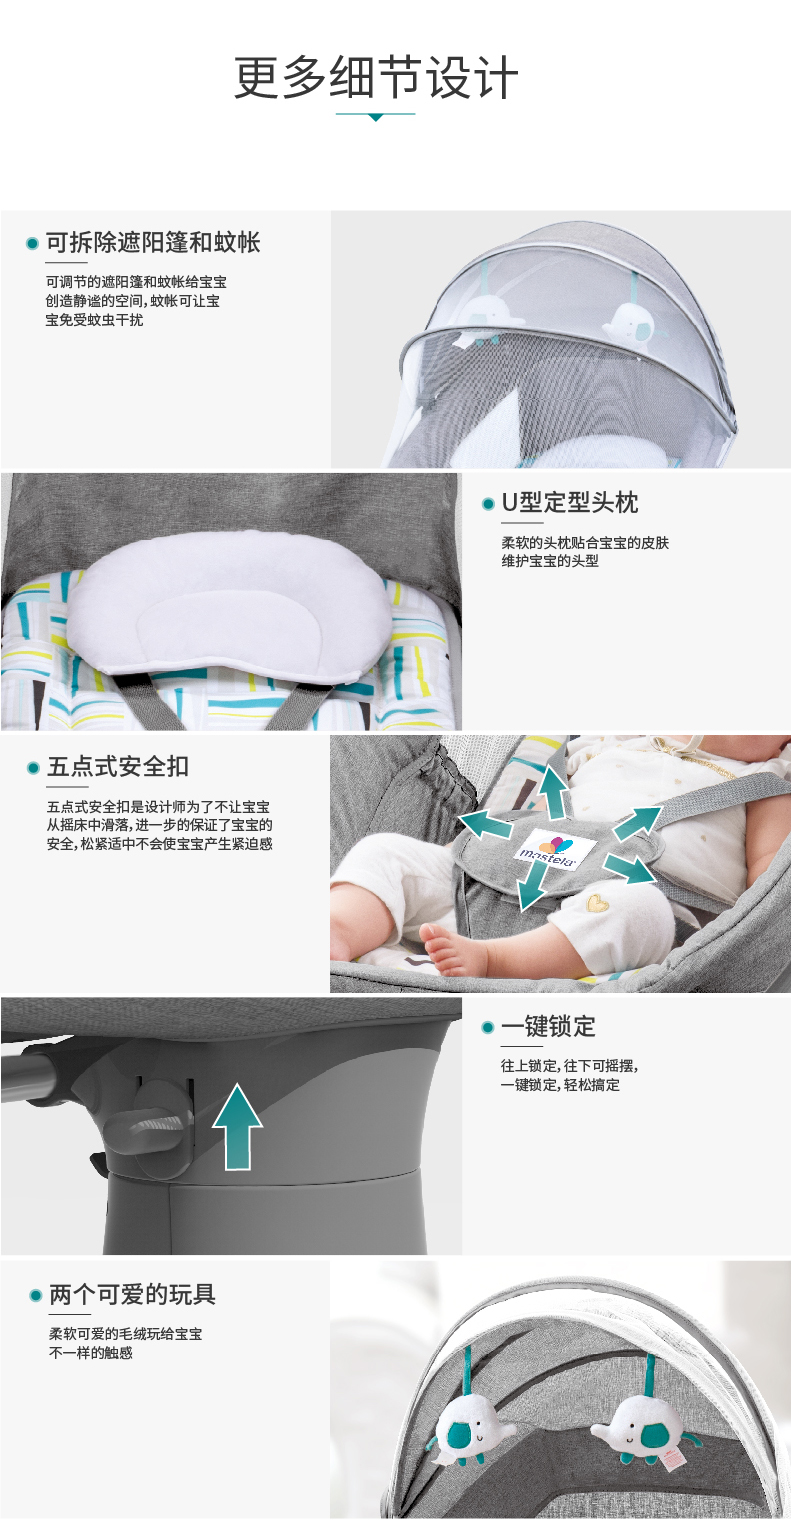 Hda417fecb5fb46c5a6041e534df416347 Baby Electric Rocking Chair To Appease Smart Cradle To baby Sleeping Artifact Electric baby Rocking bed Swing